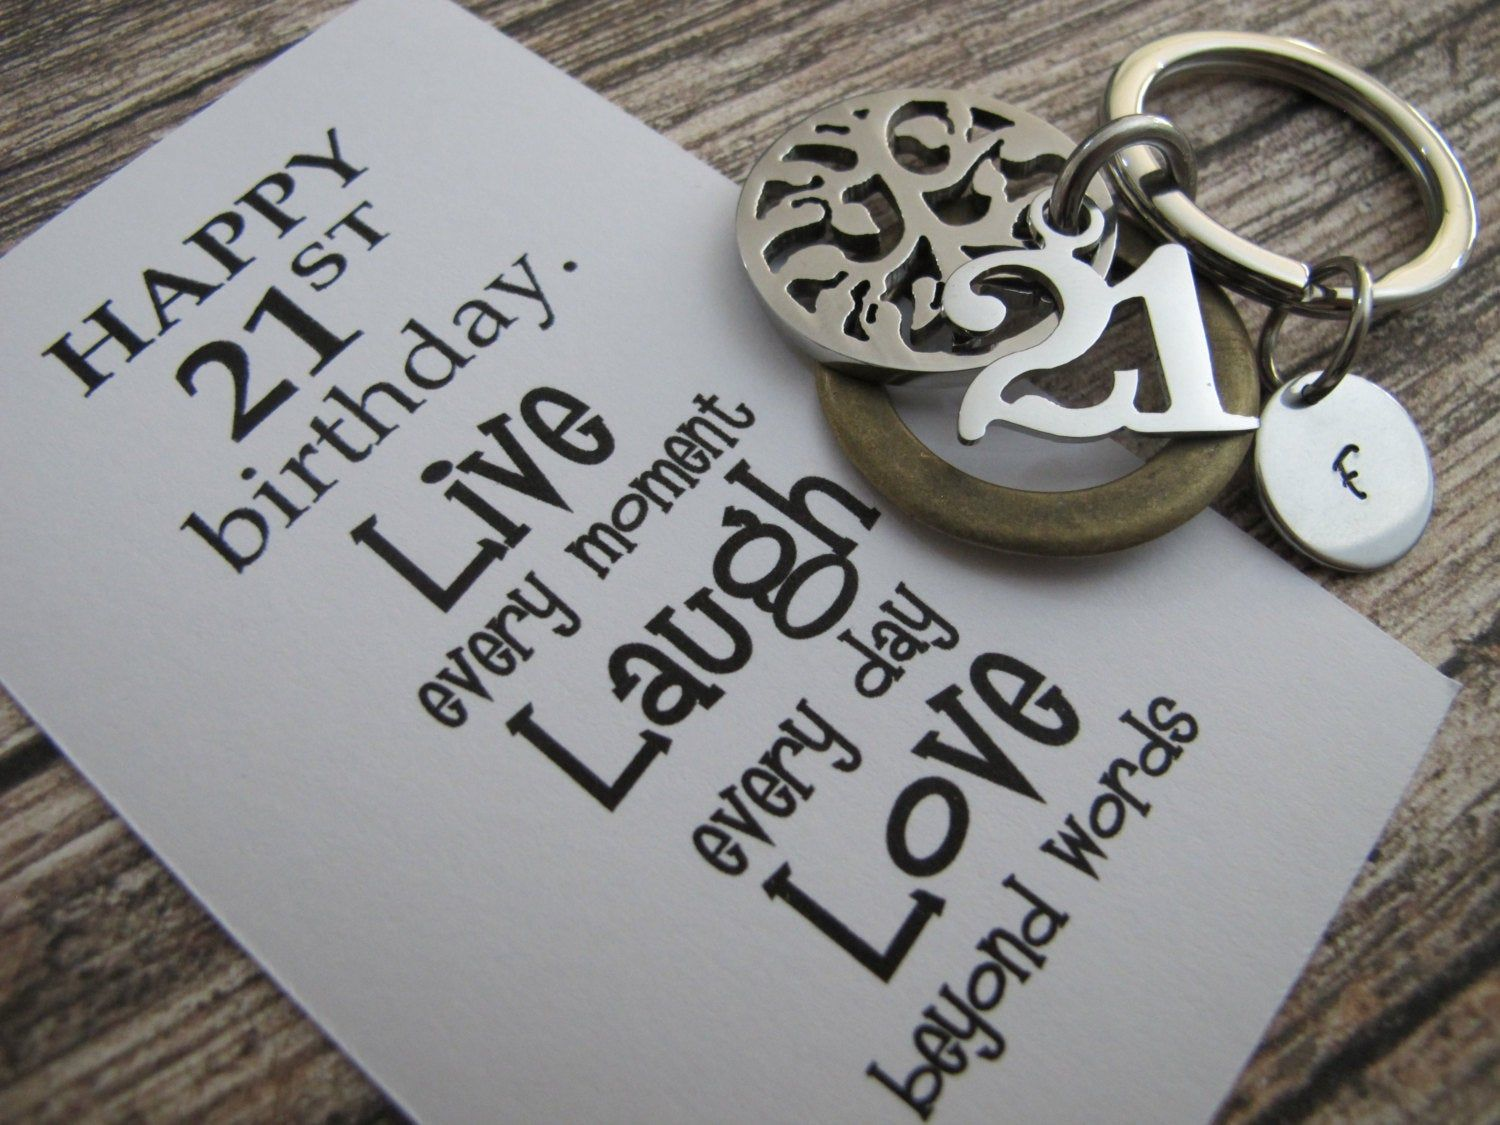 21st birthday gifts 21st birthday gifts for him gift